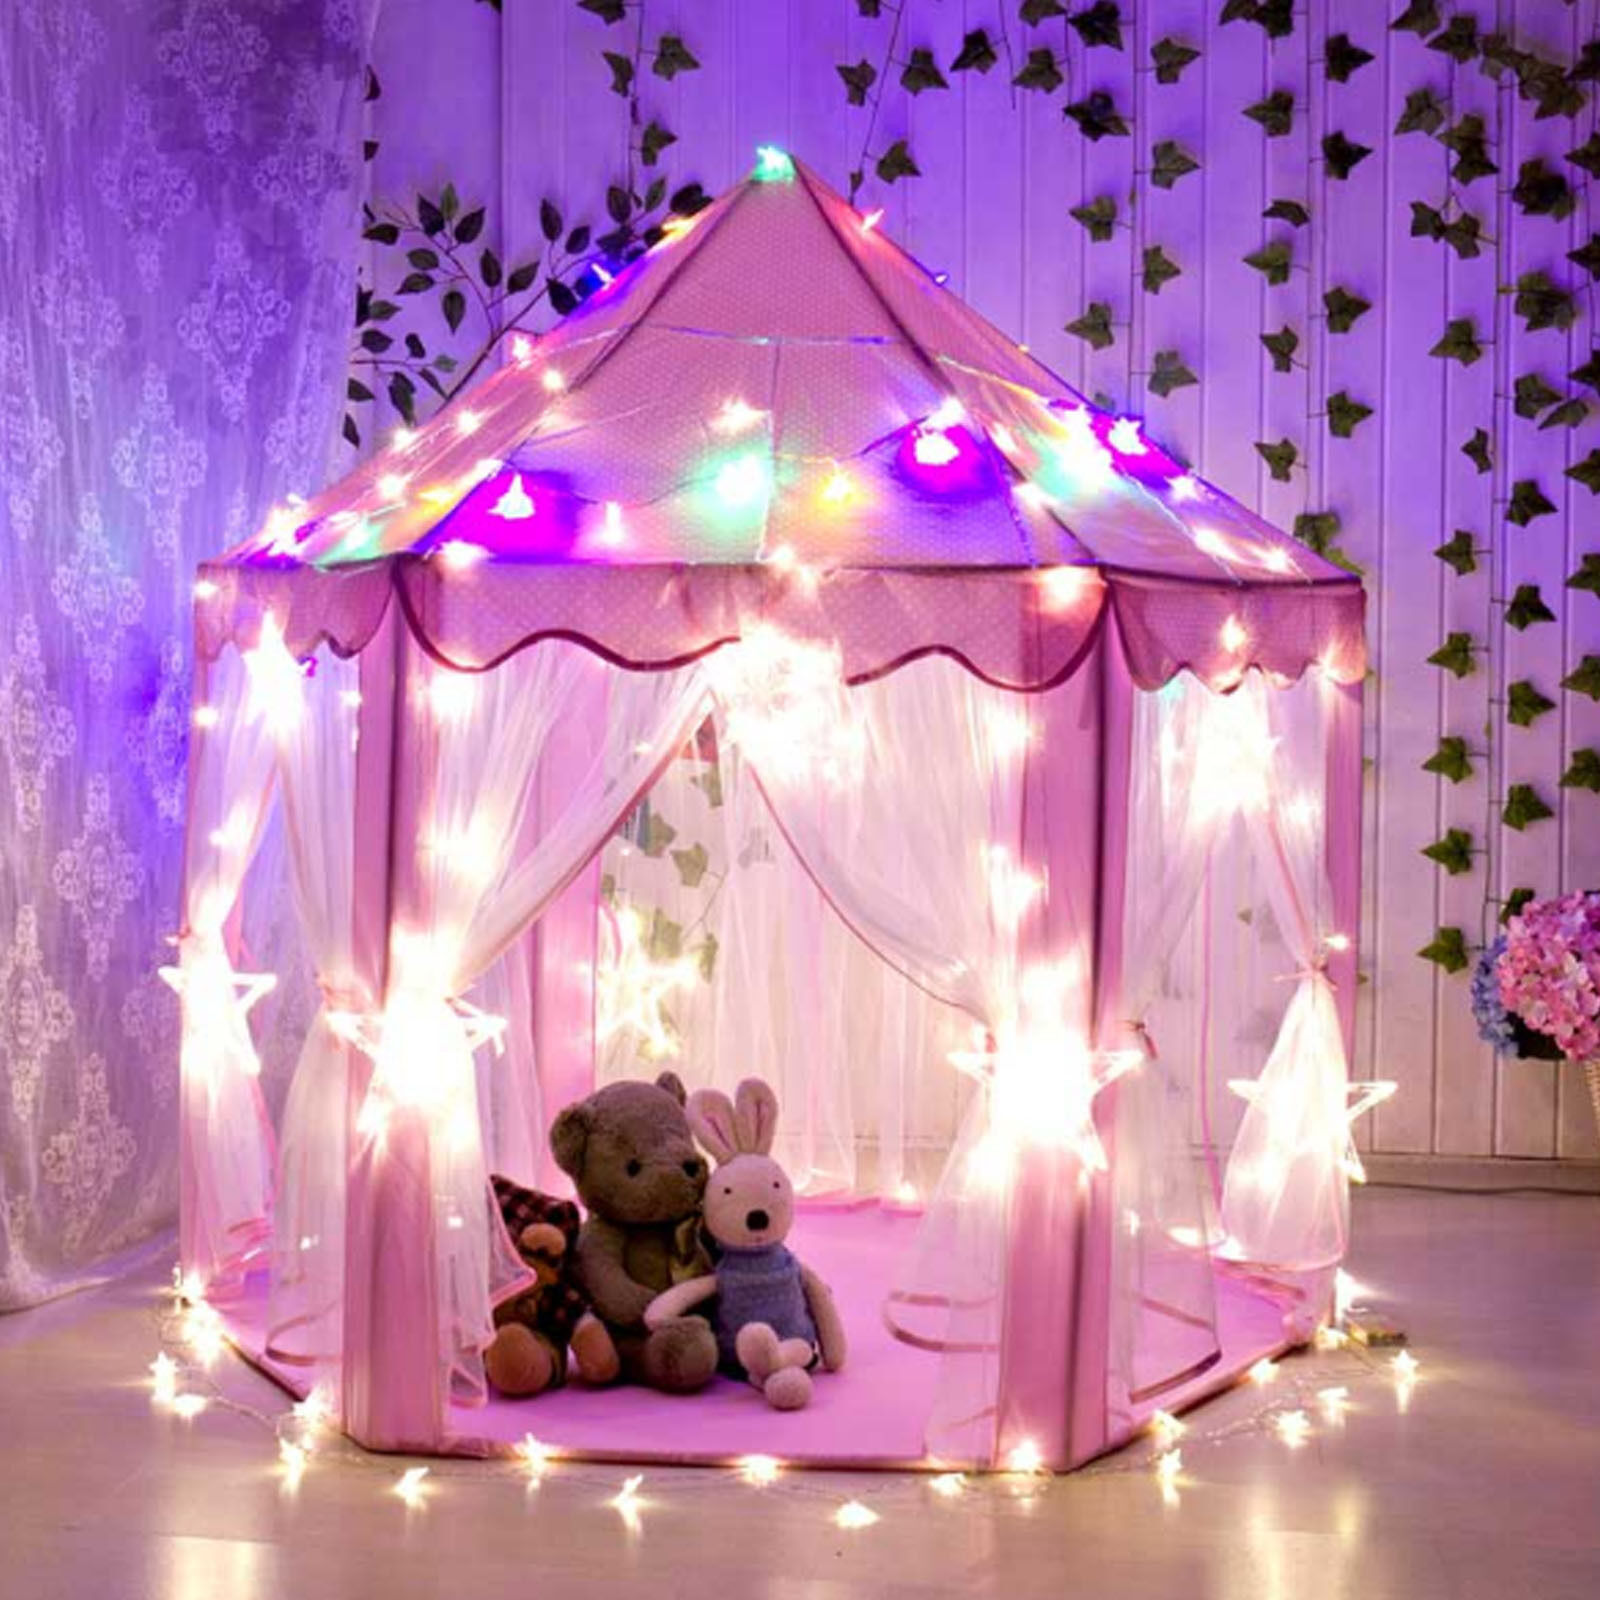 Princess Castle Play House Large Indoor/Outdoor Kids Play Tent for Girls Pink  sc 1 st  eBay & Play Tent | eBay